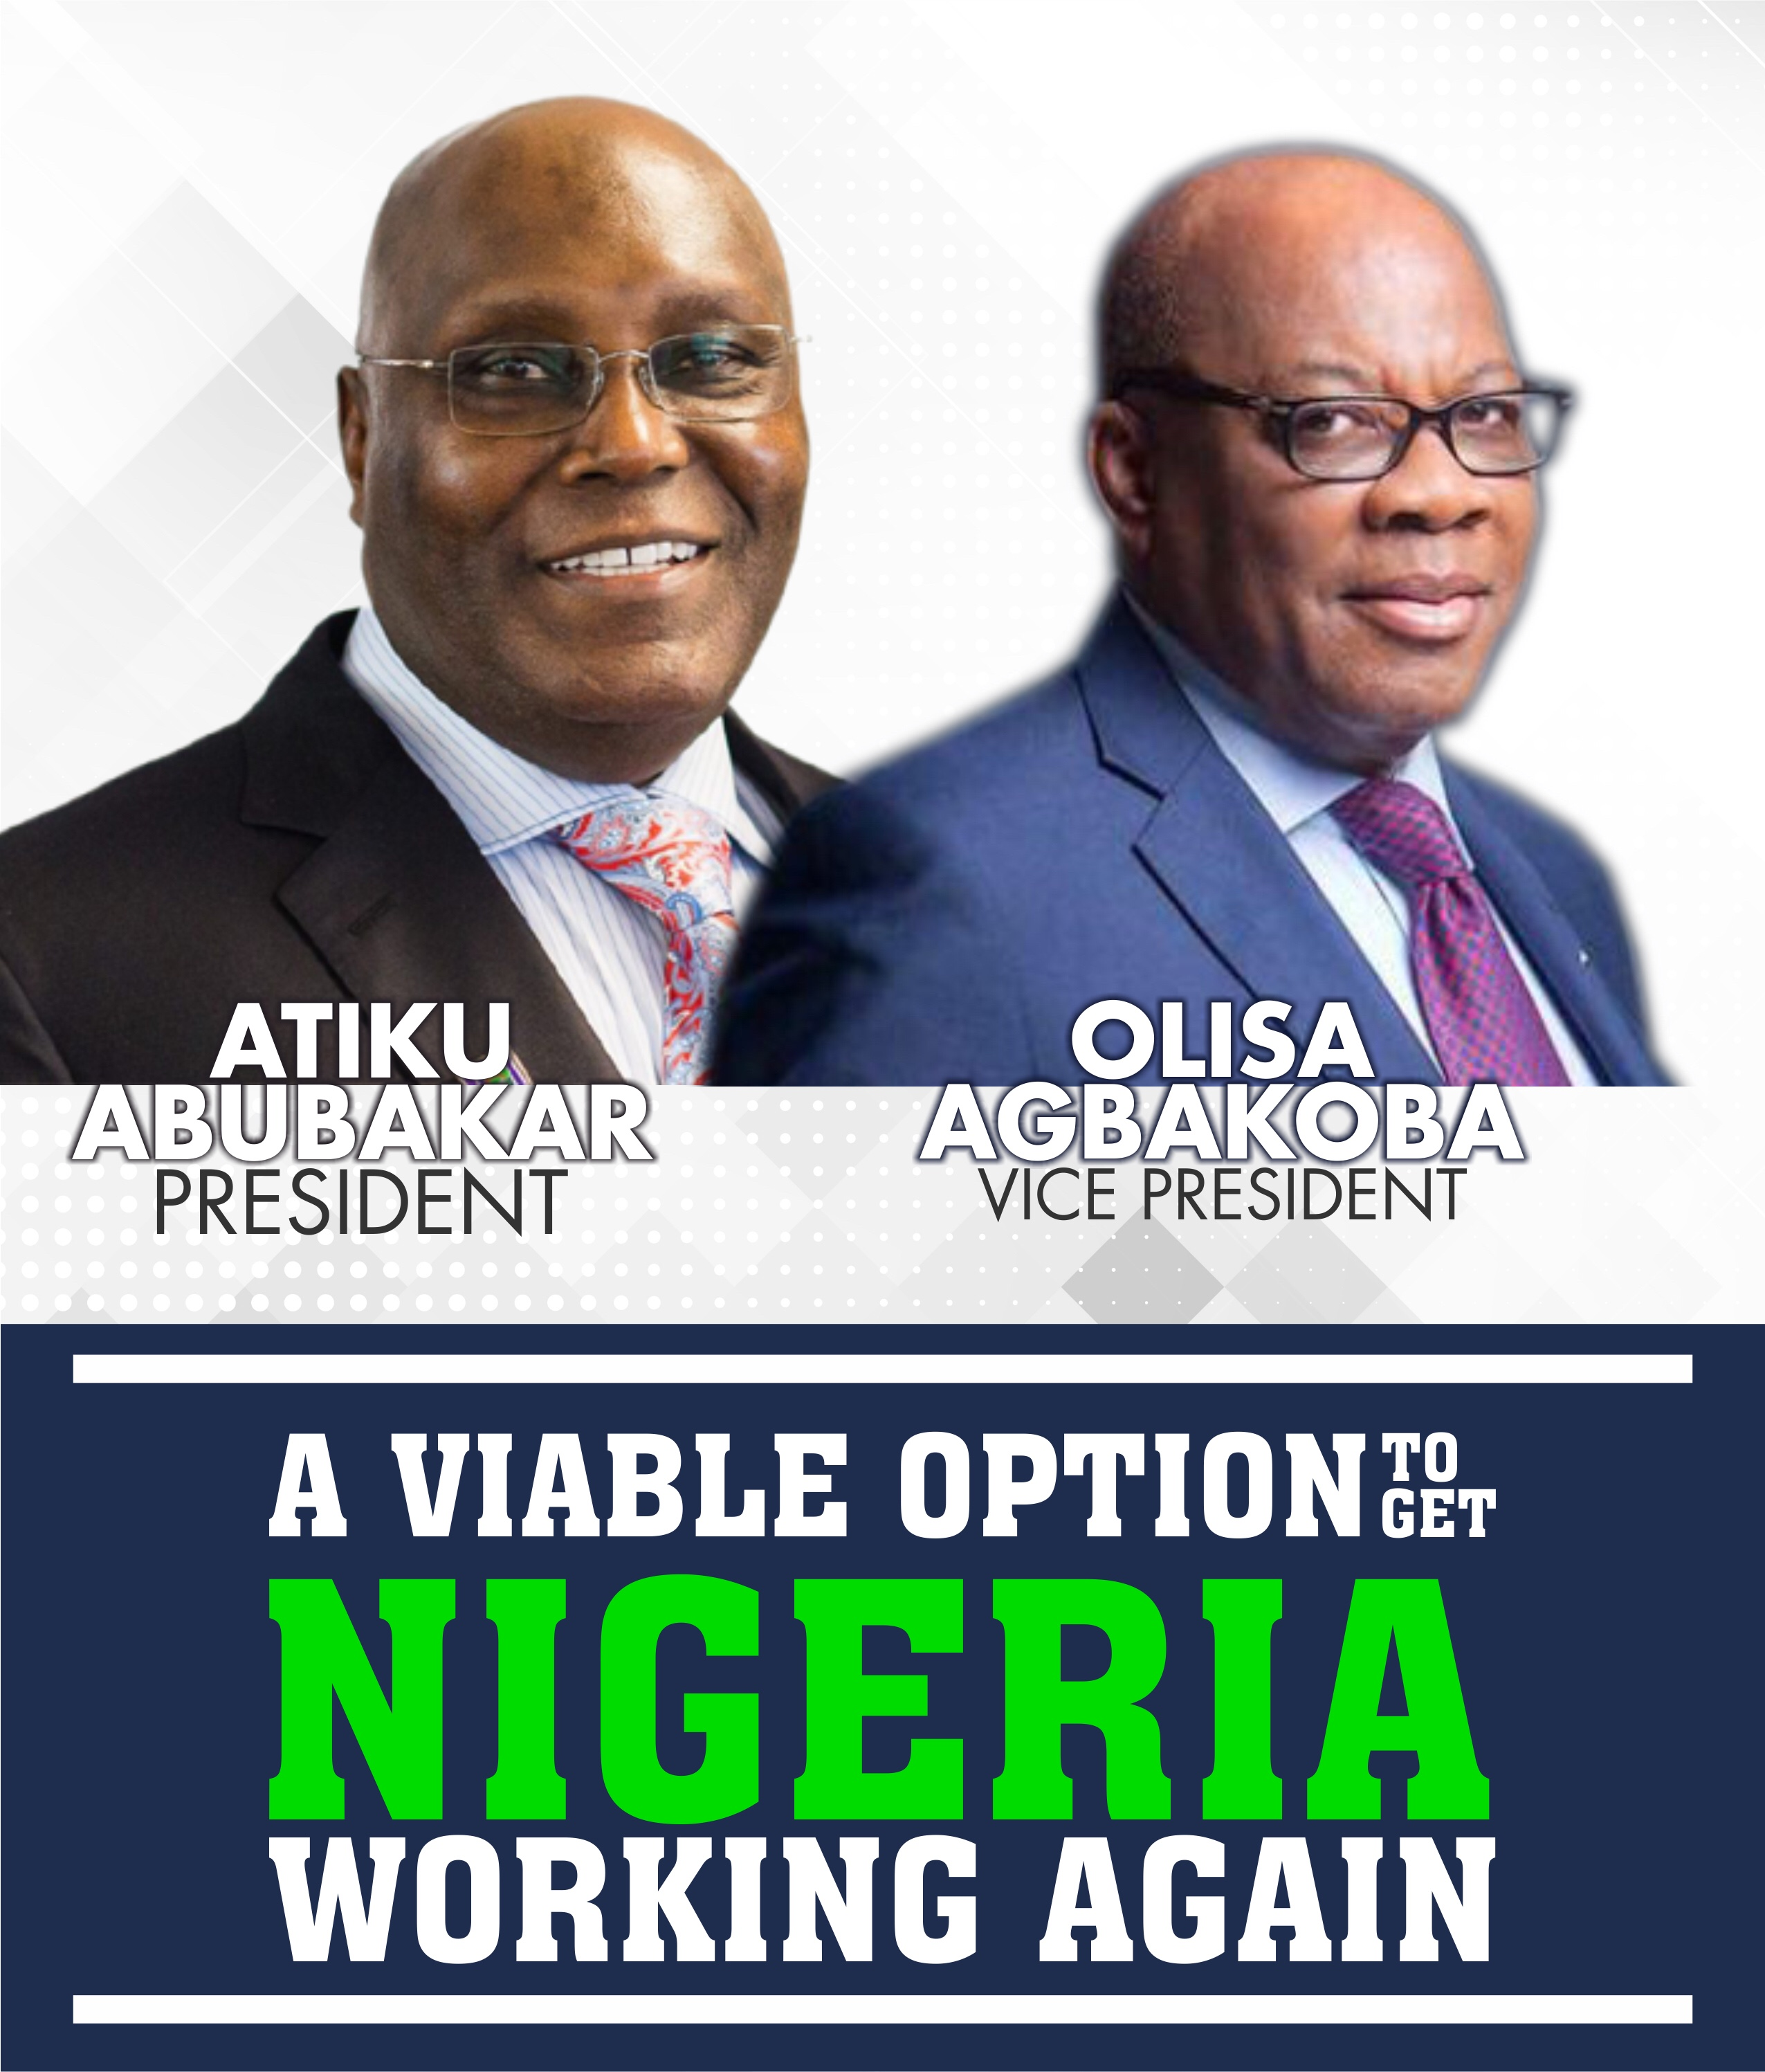 10 Things to Know About Atiku's Running Mate, Olisa Agbakoba